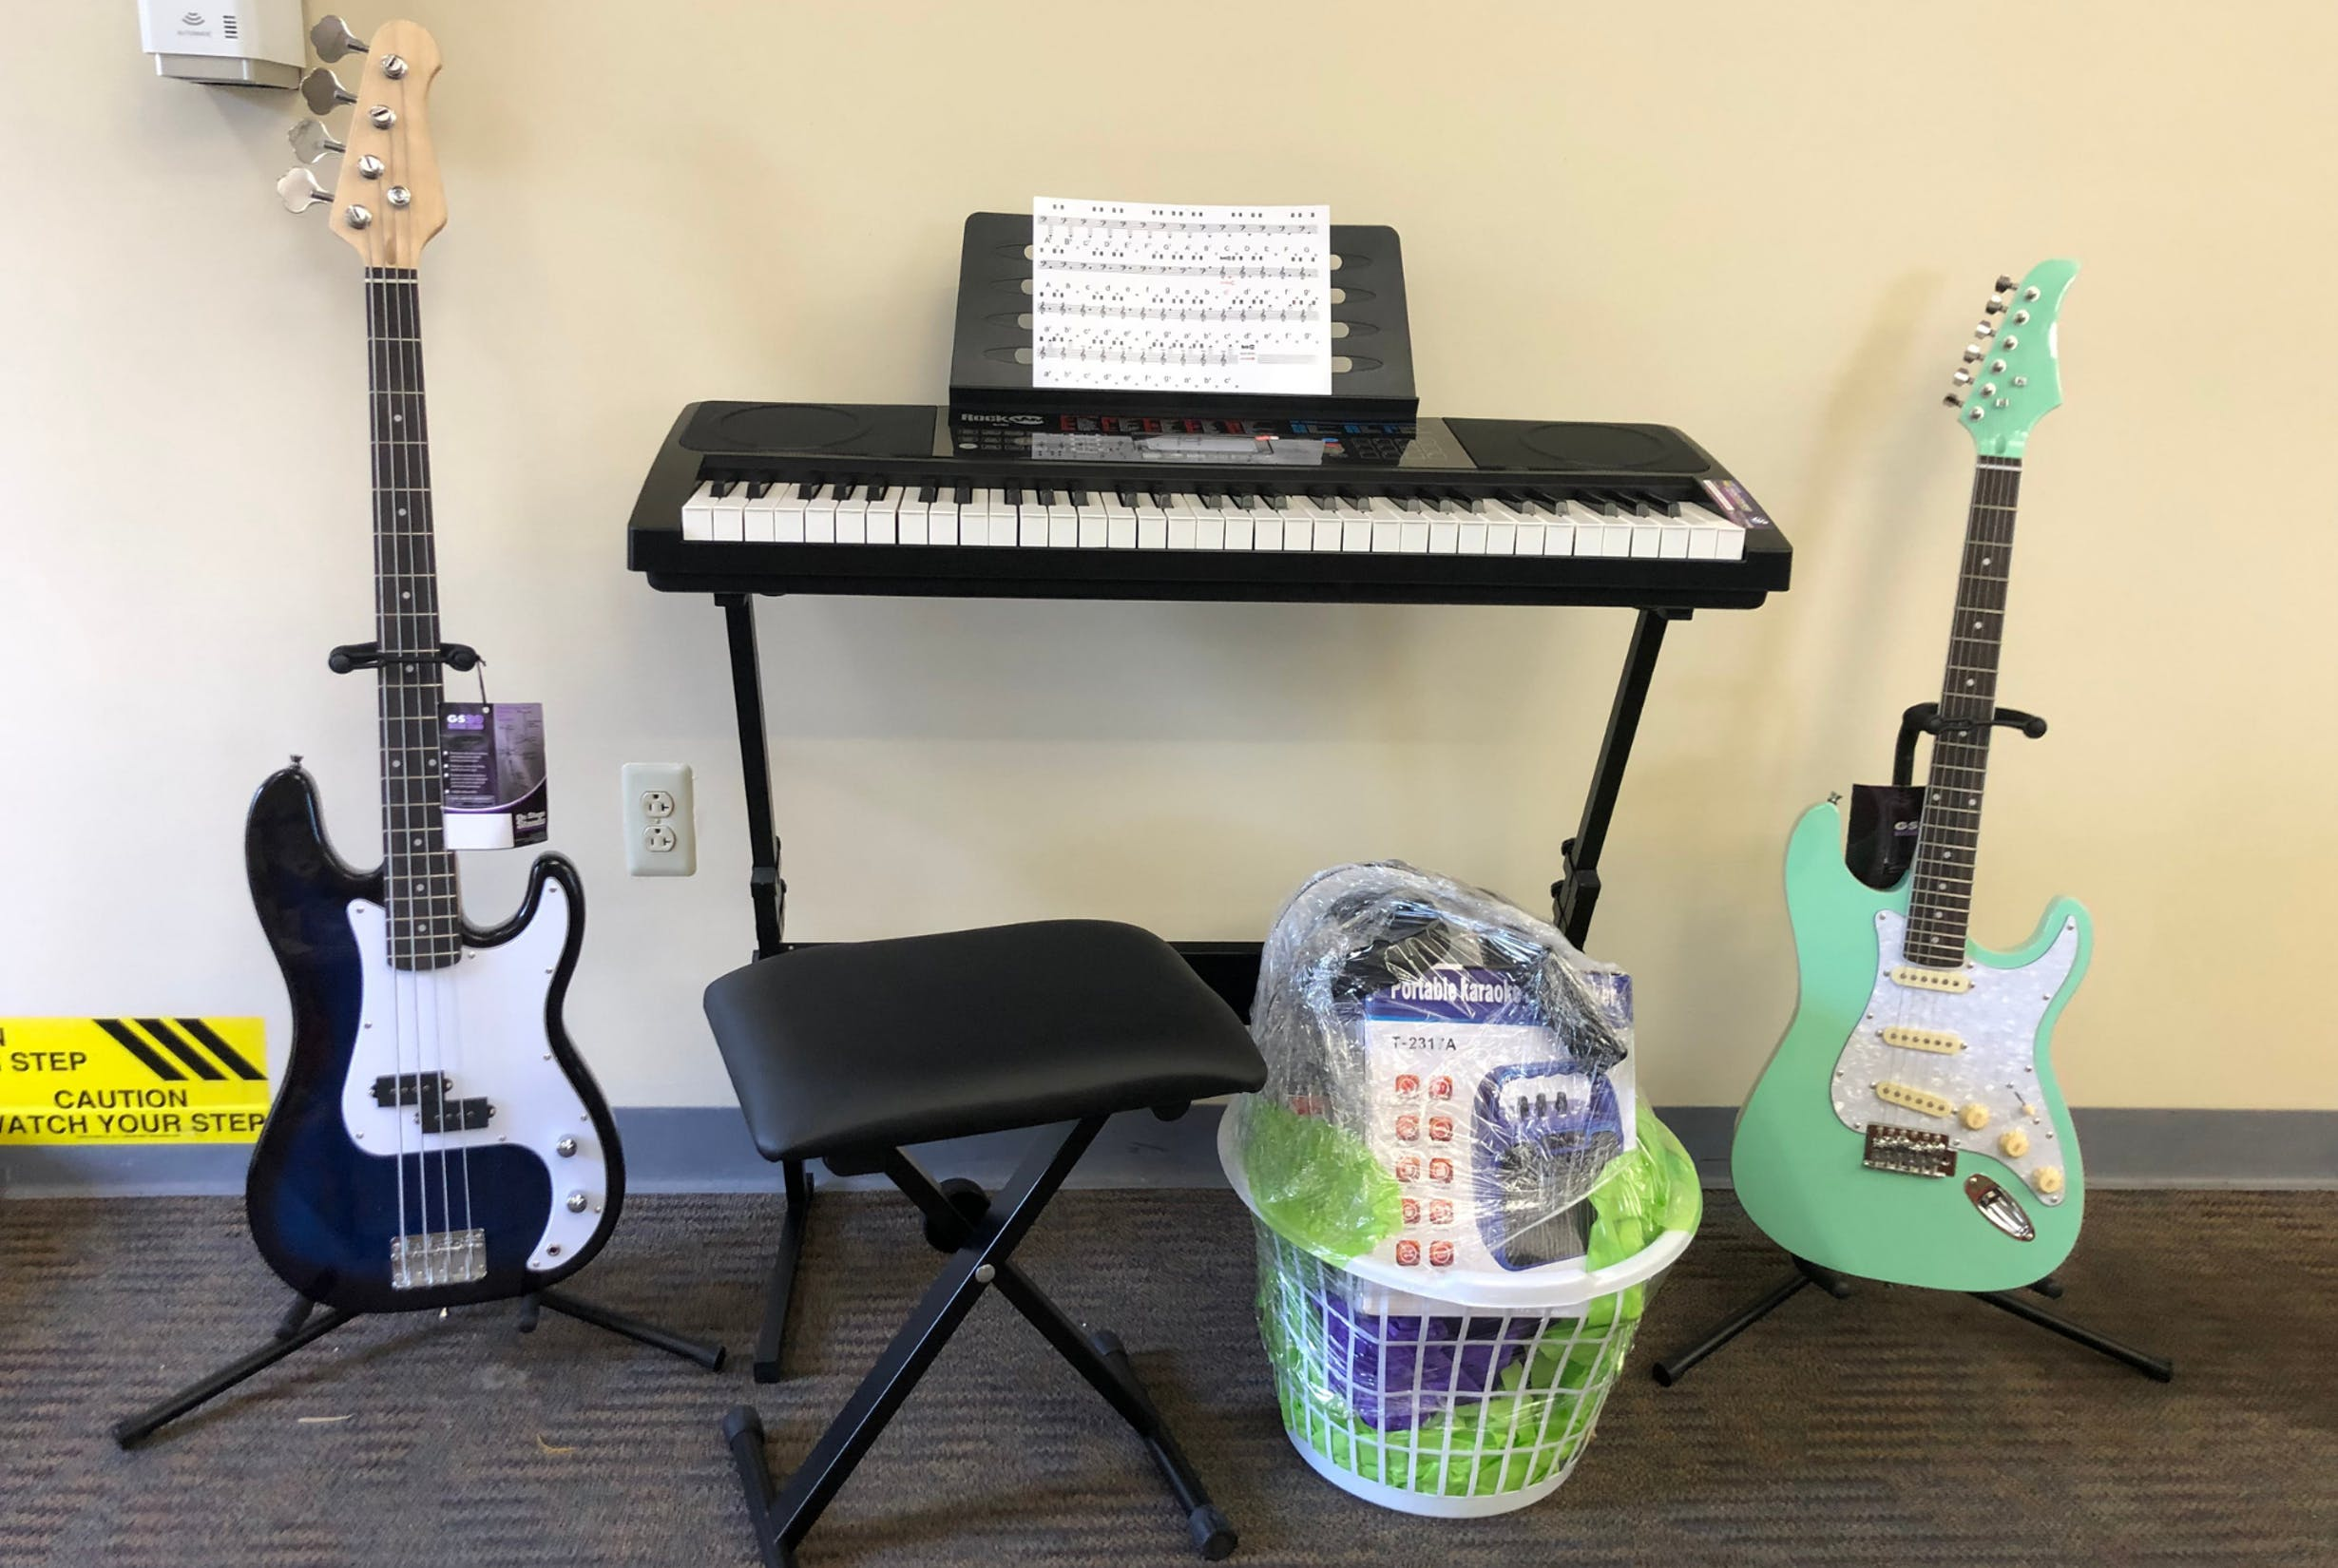 Band in a Basket Prize